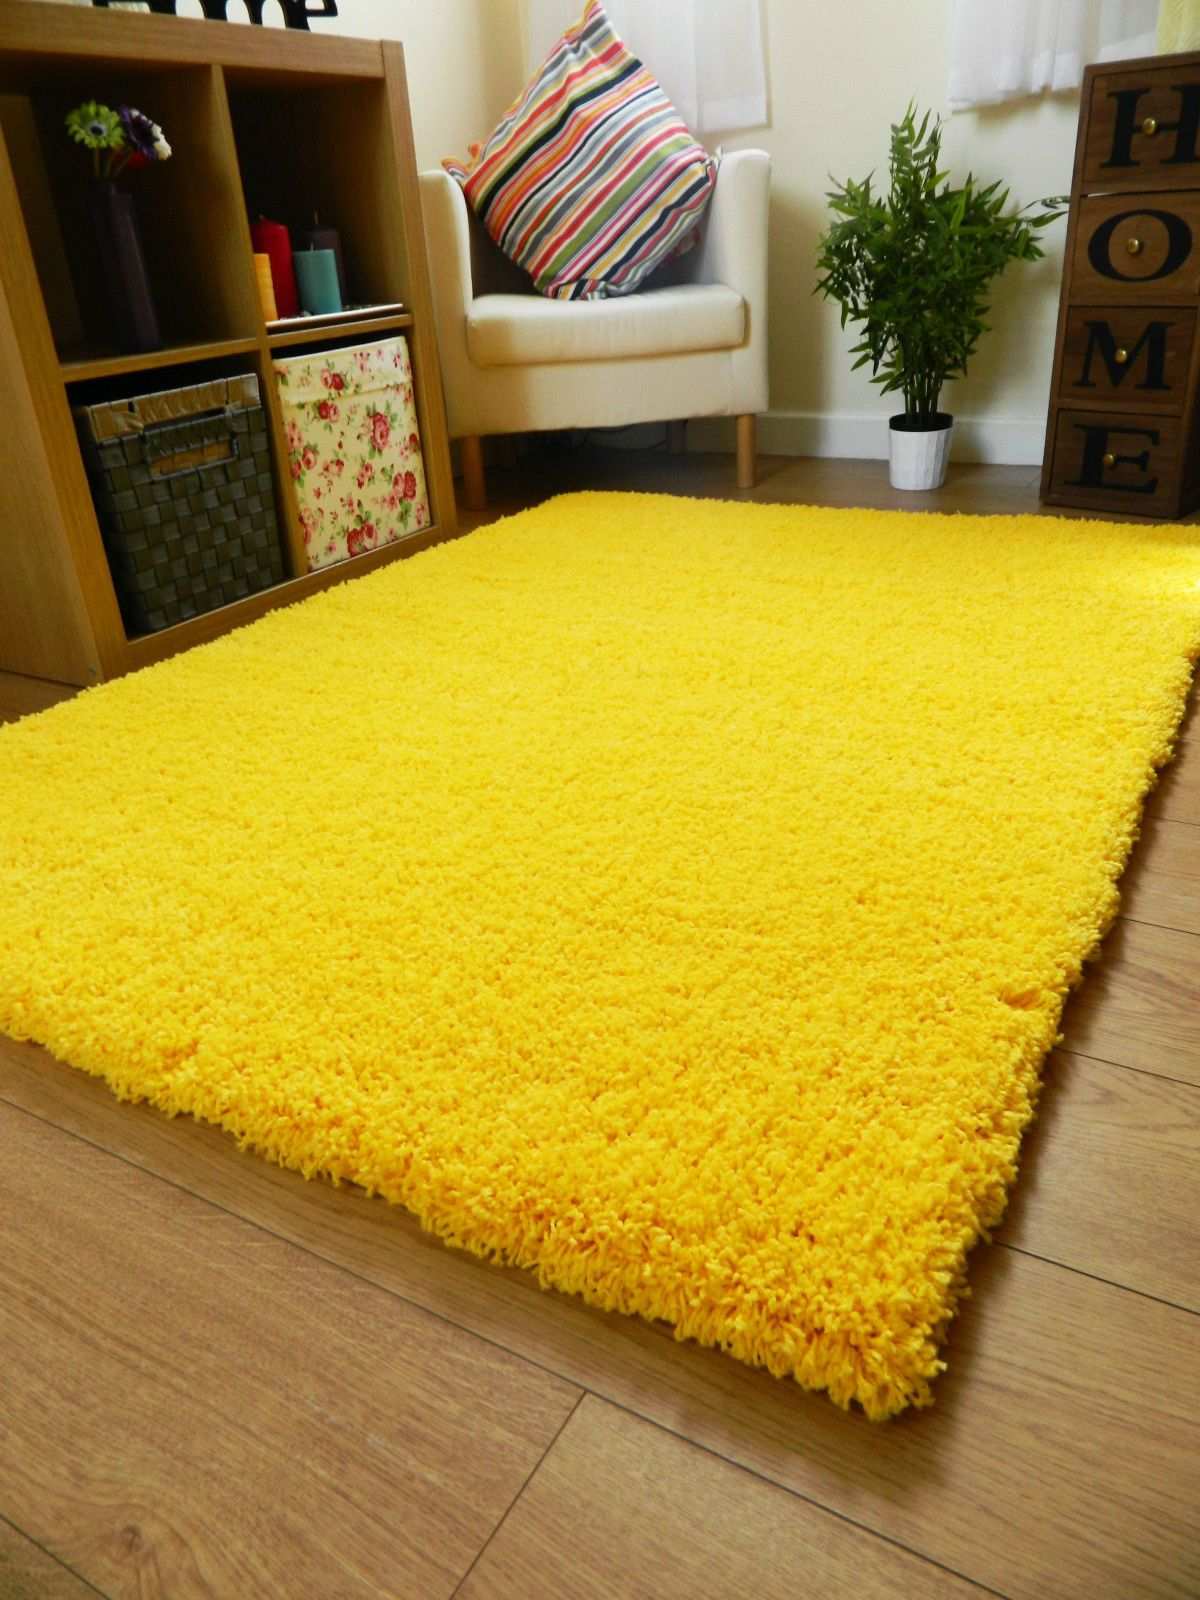 Small X Large Size Thick Plain Soft Shaggy Rug Non Shed 5cm Pile Modern Rugs Ebay Yellow Bedroom Decor Yellow Room Decor Rugs In Living Room Yellow rugs for living room